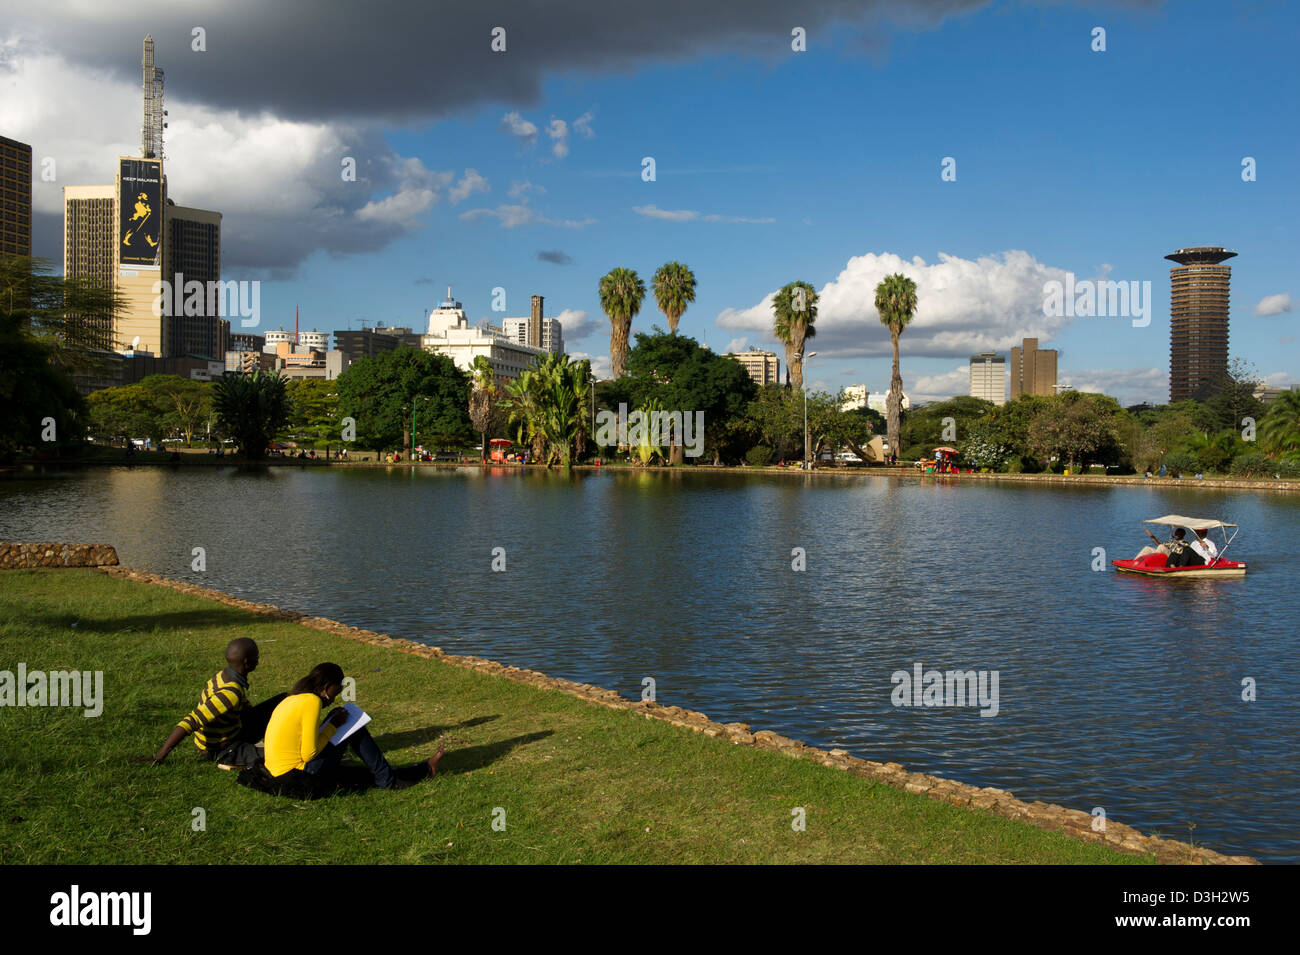 Boating on the lake in Uhuru Park, Central Nairobi, Kenya - Stock Image